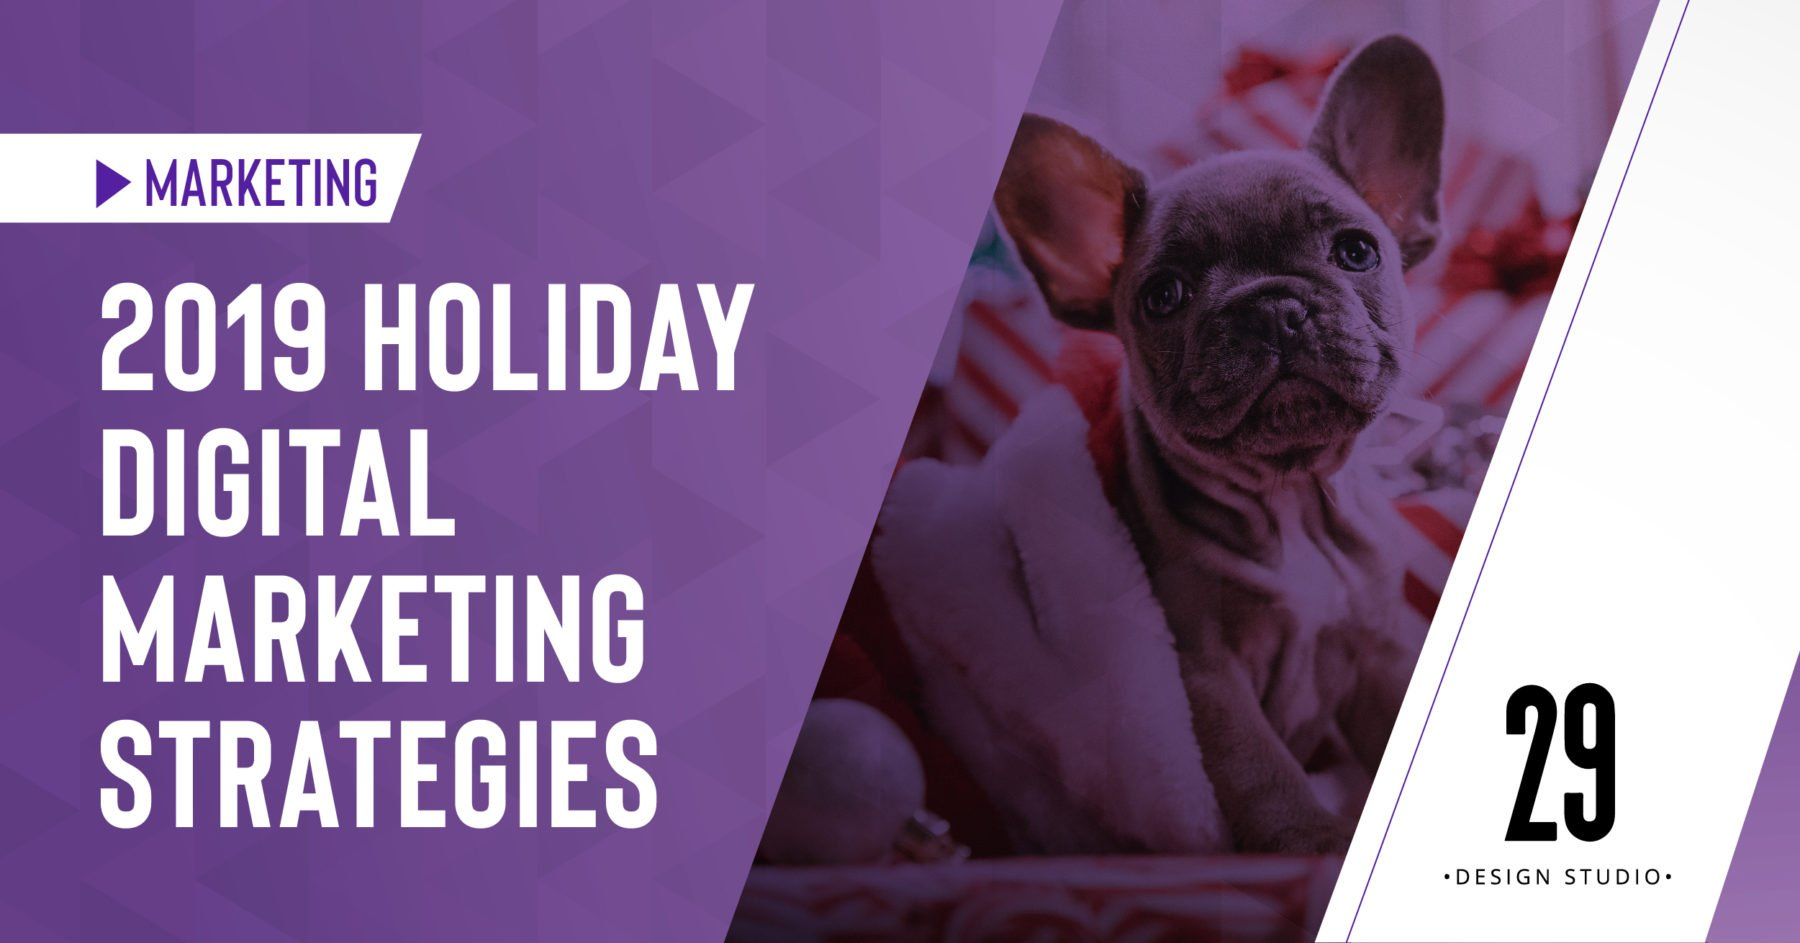 Teaser image - 2019 Holiday Digital Marketing Strategies